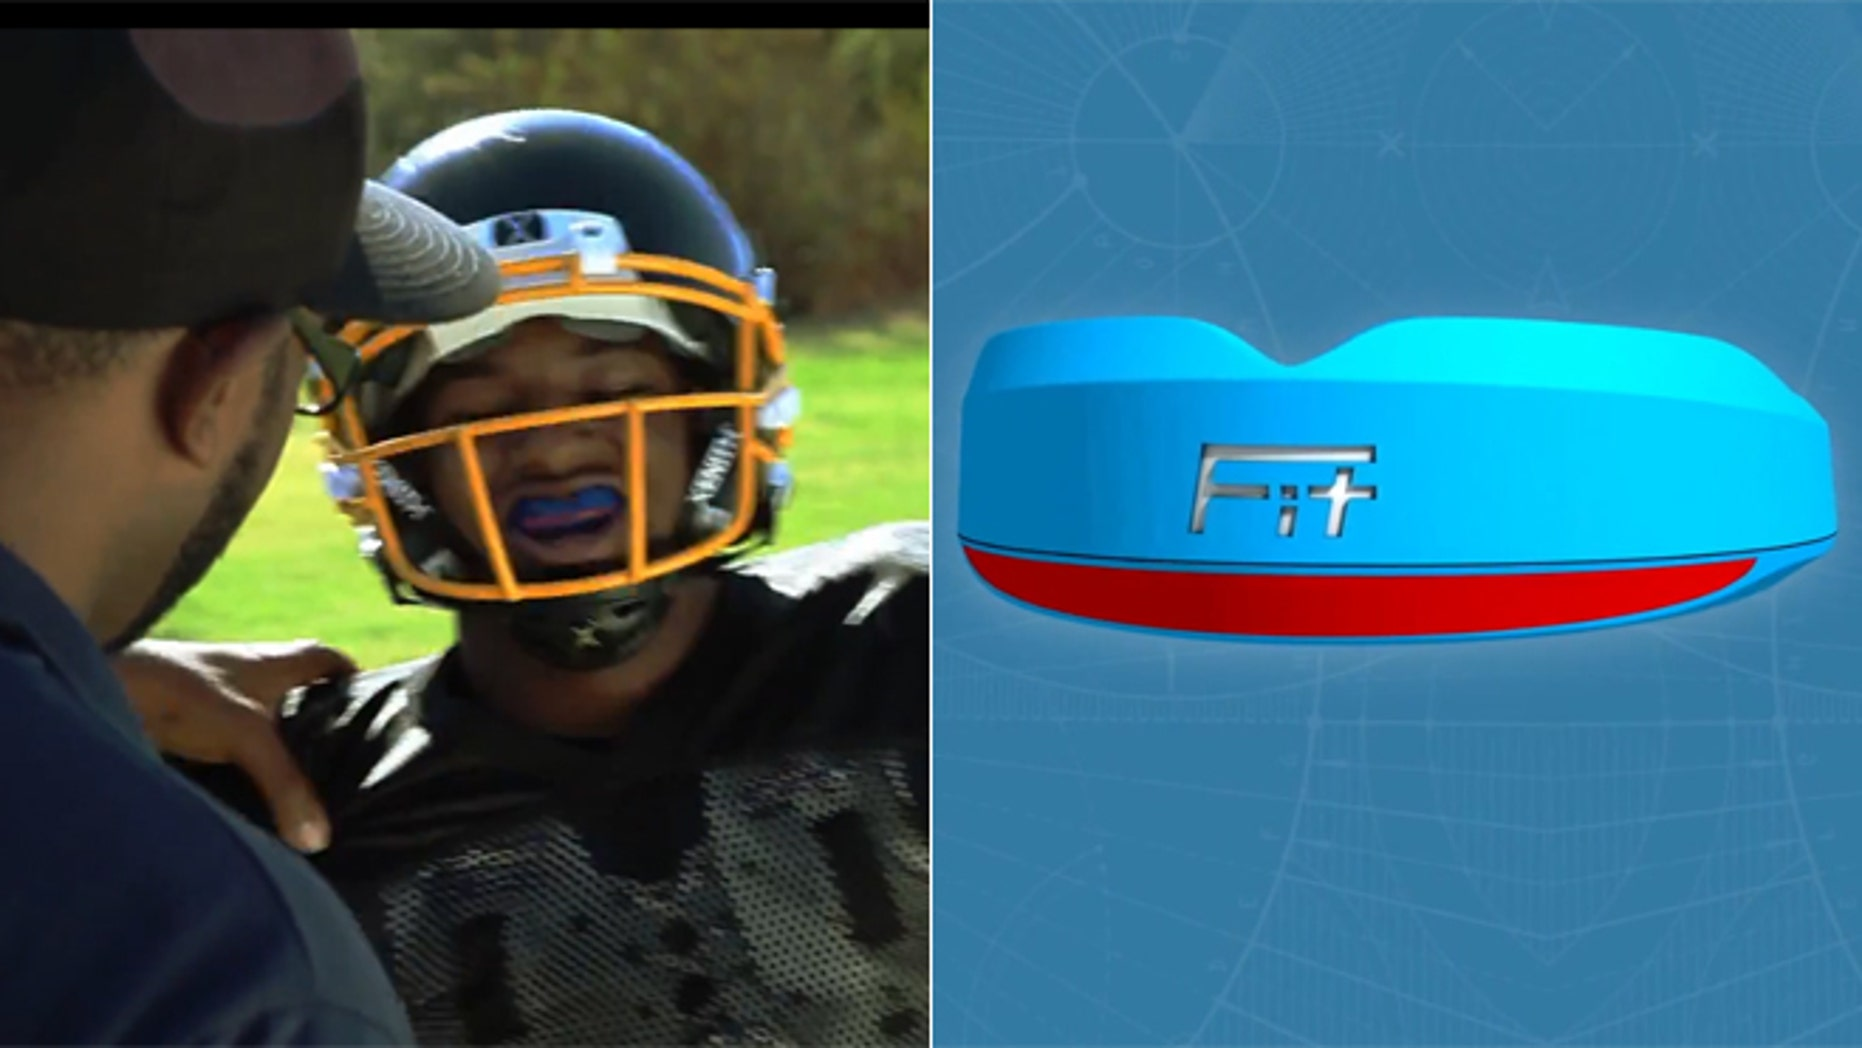 Left, an unidentified athlete outfitted with a FITGuard reports to his coach after a head impact, with the LED lights flashing red. Pictured right is a prototype photo of the FITGuard when it flashes red, signaling a high impact hit.